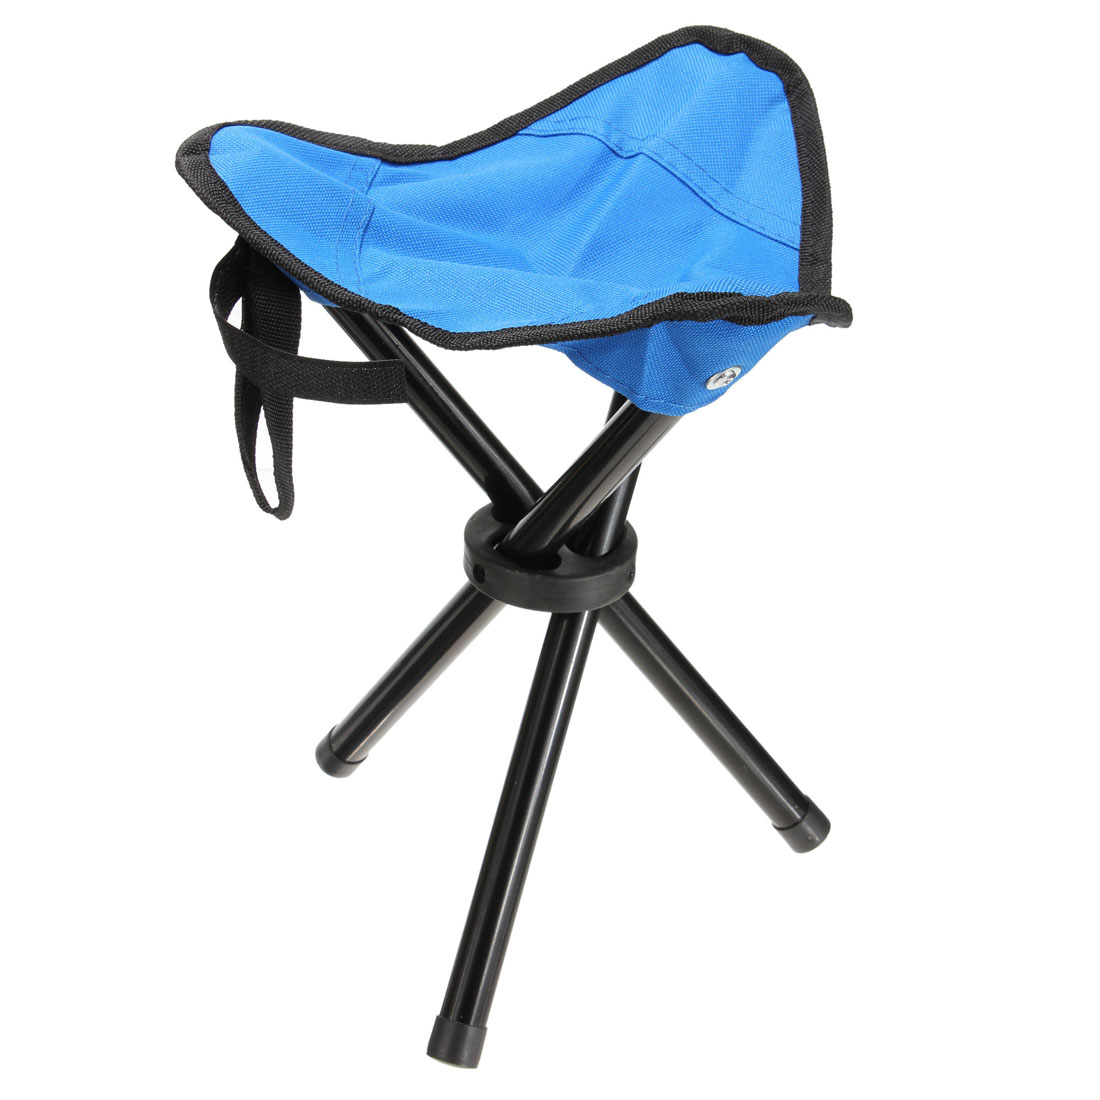 fishing chair singapore sears outlet bean bag chairs folding with 3 legs picnic seat outdoor camping